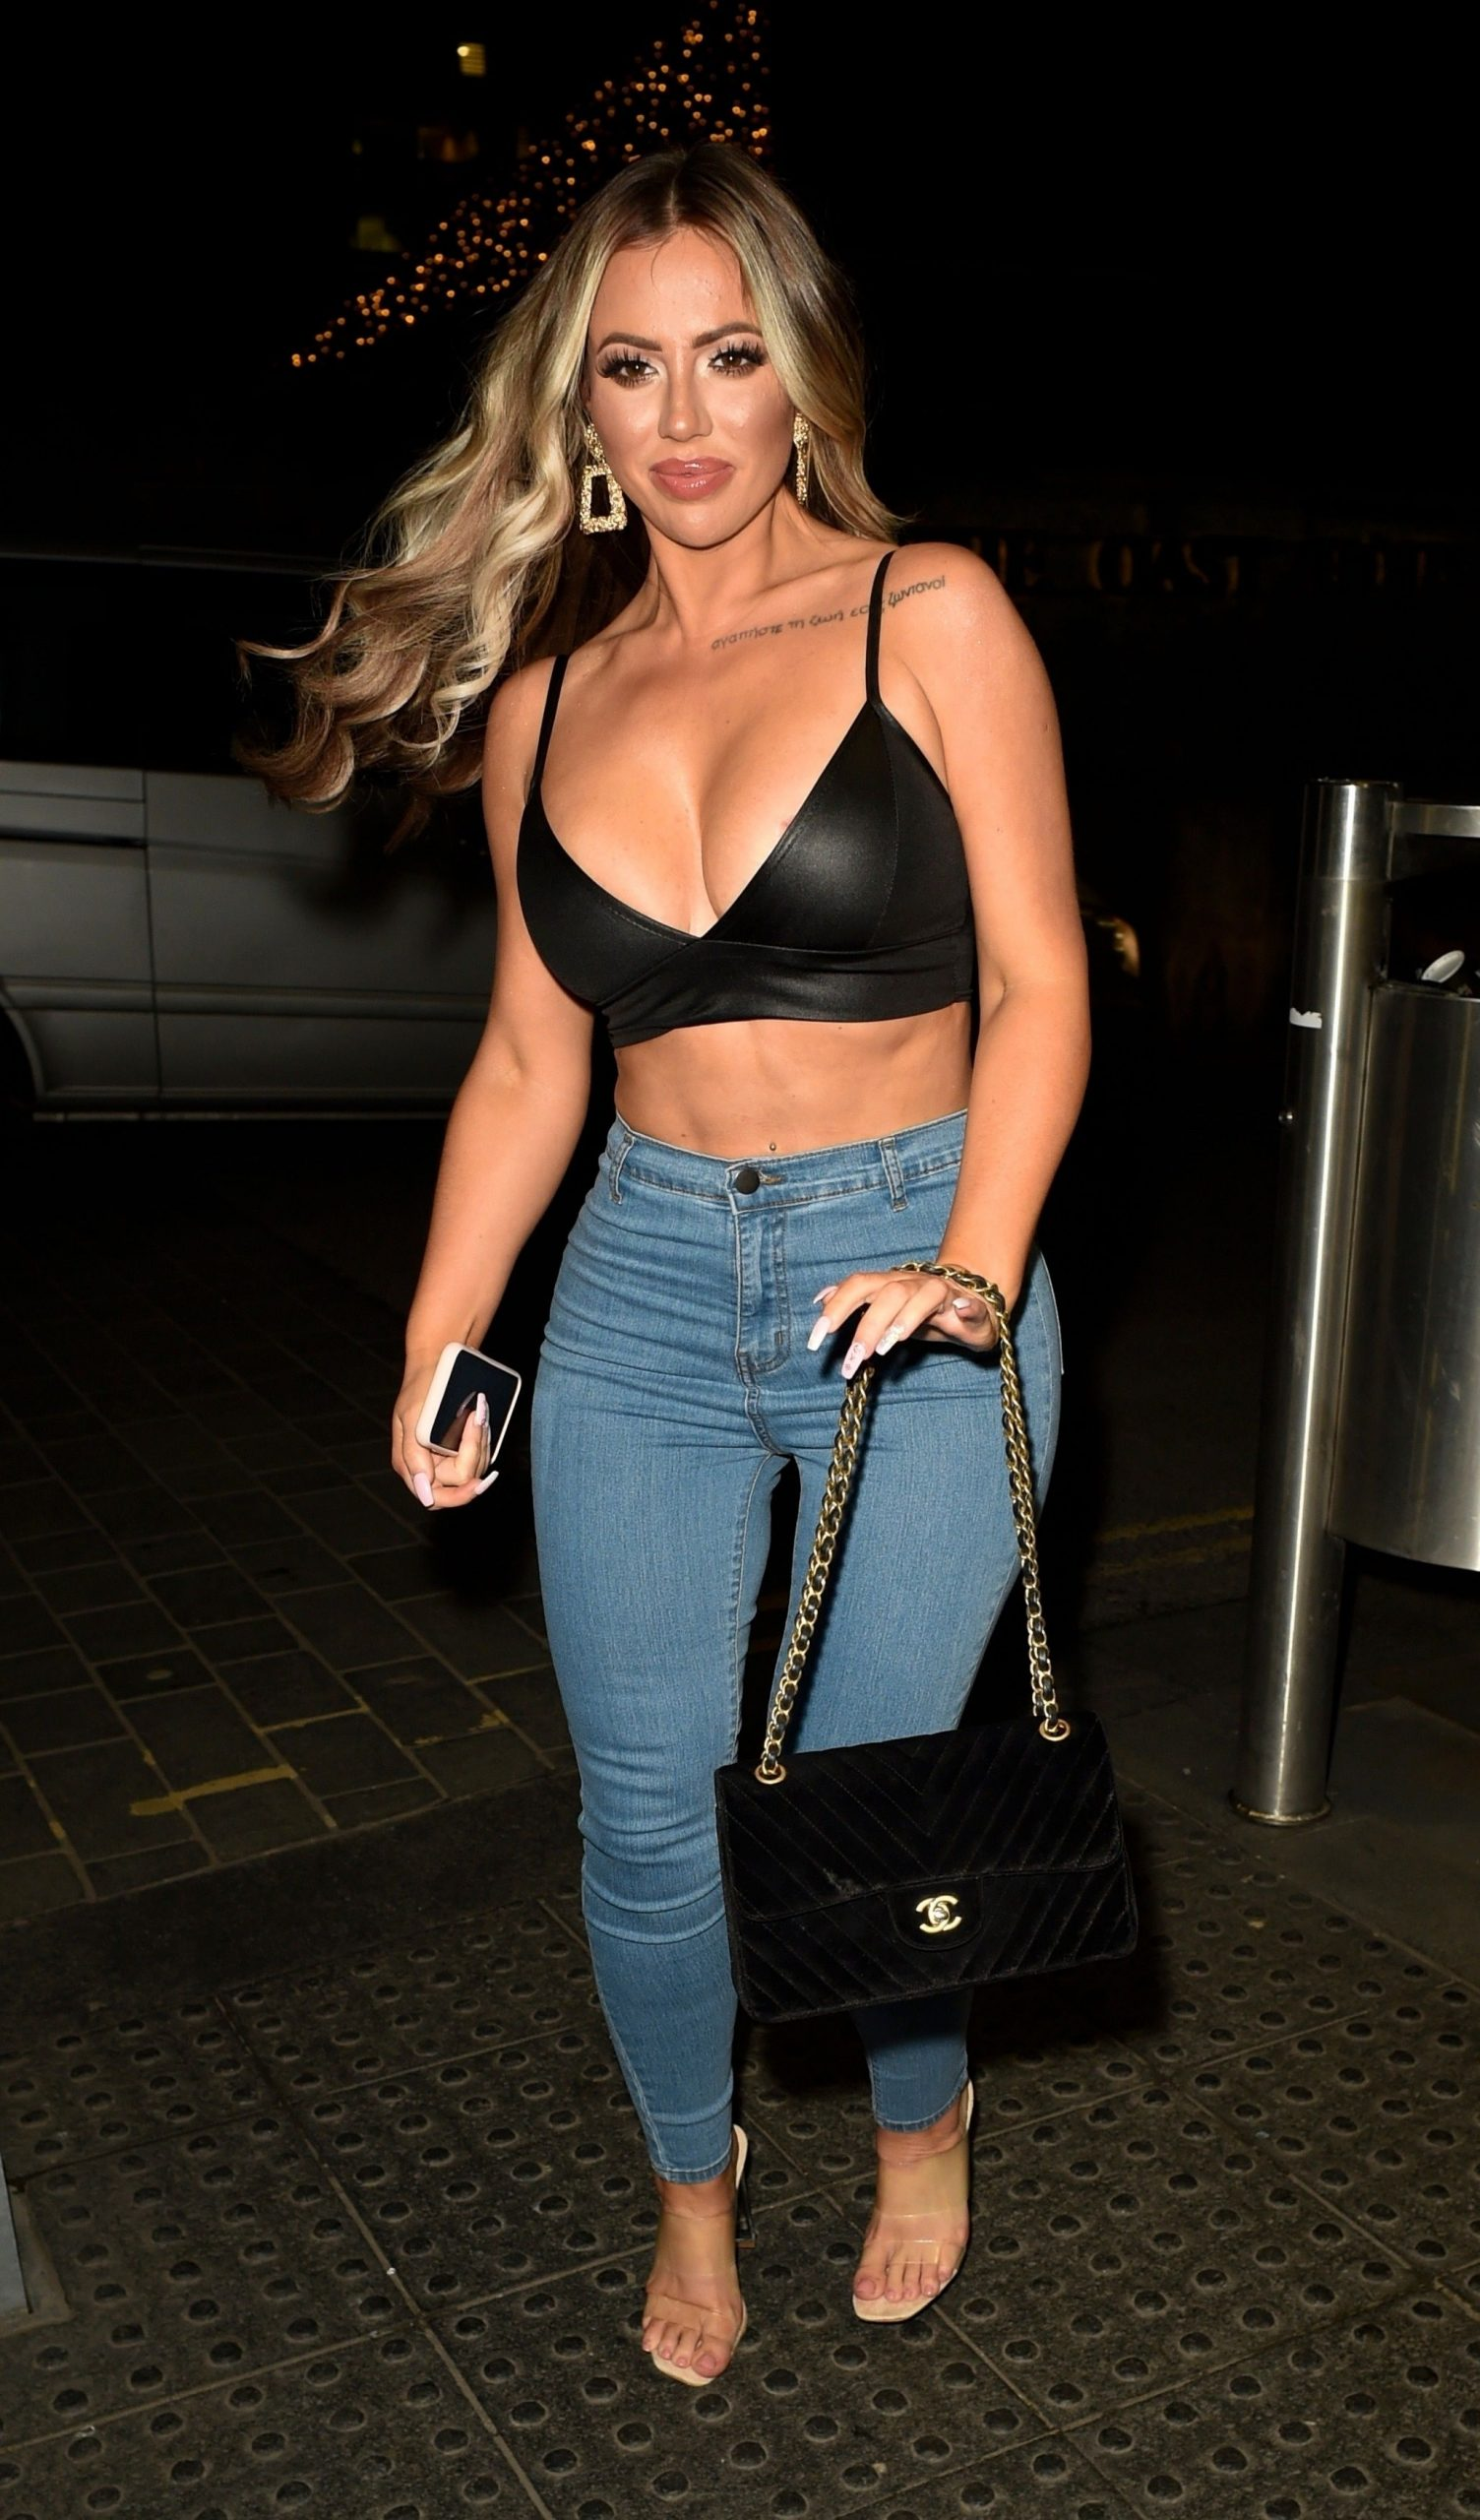 Holly Hagan Shows Off Her Sexy Figure On A Girls Night Out 0009